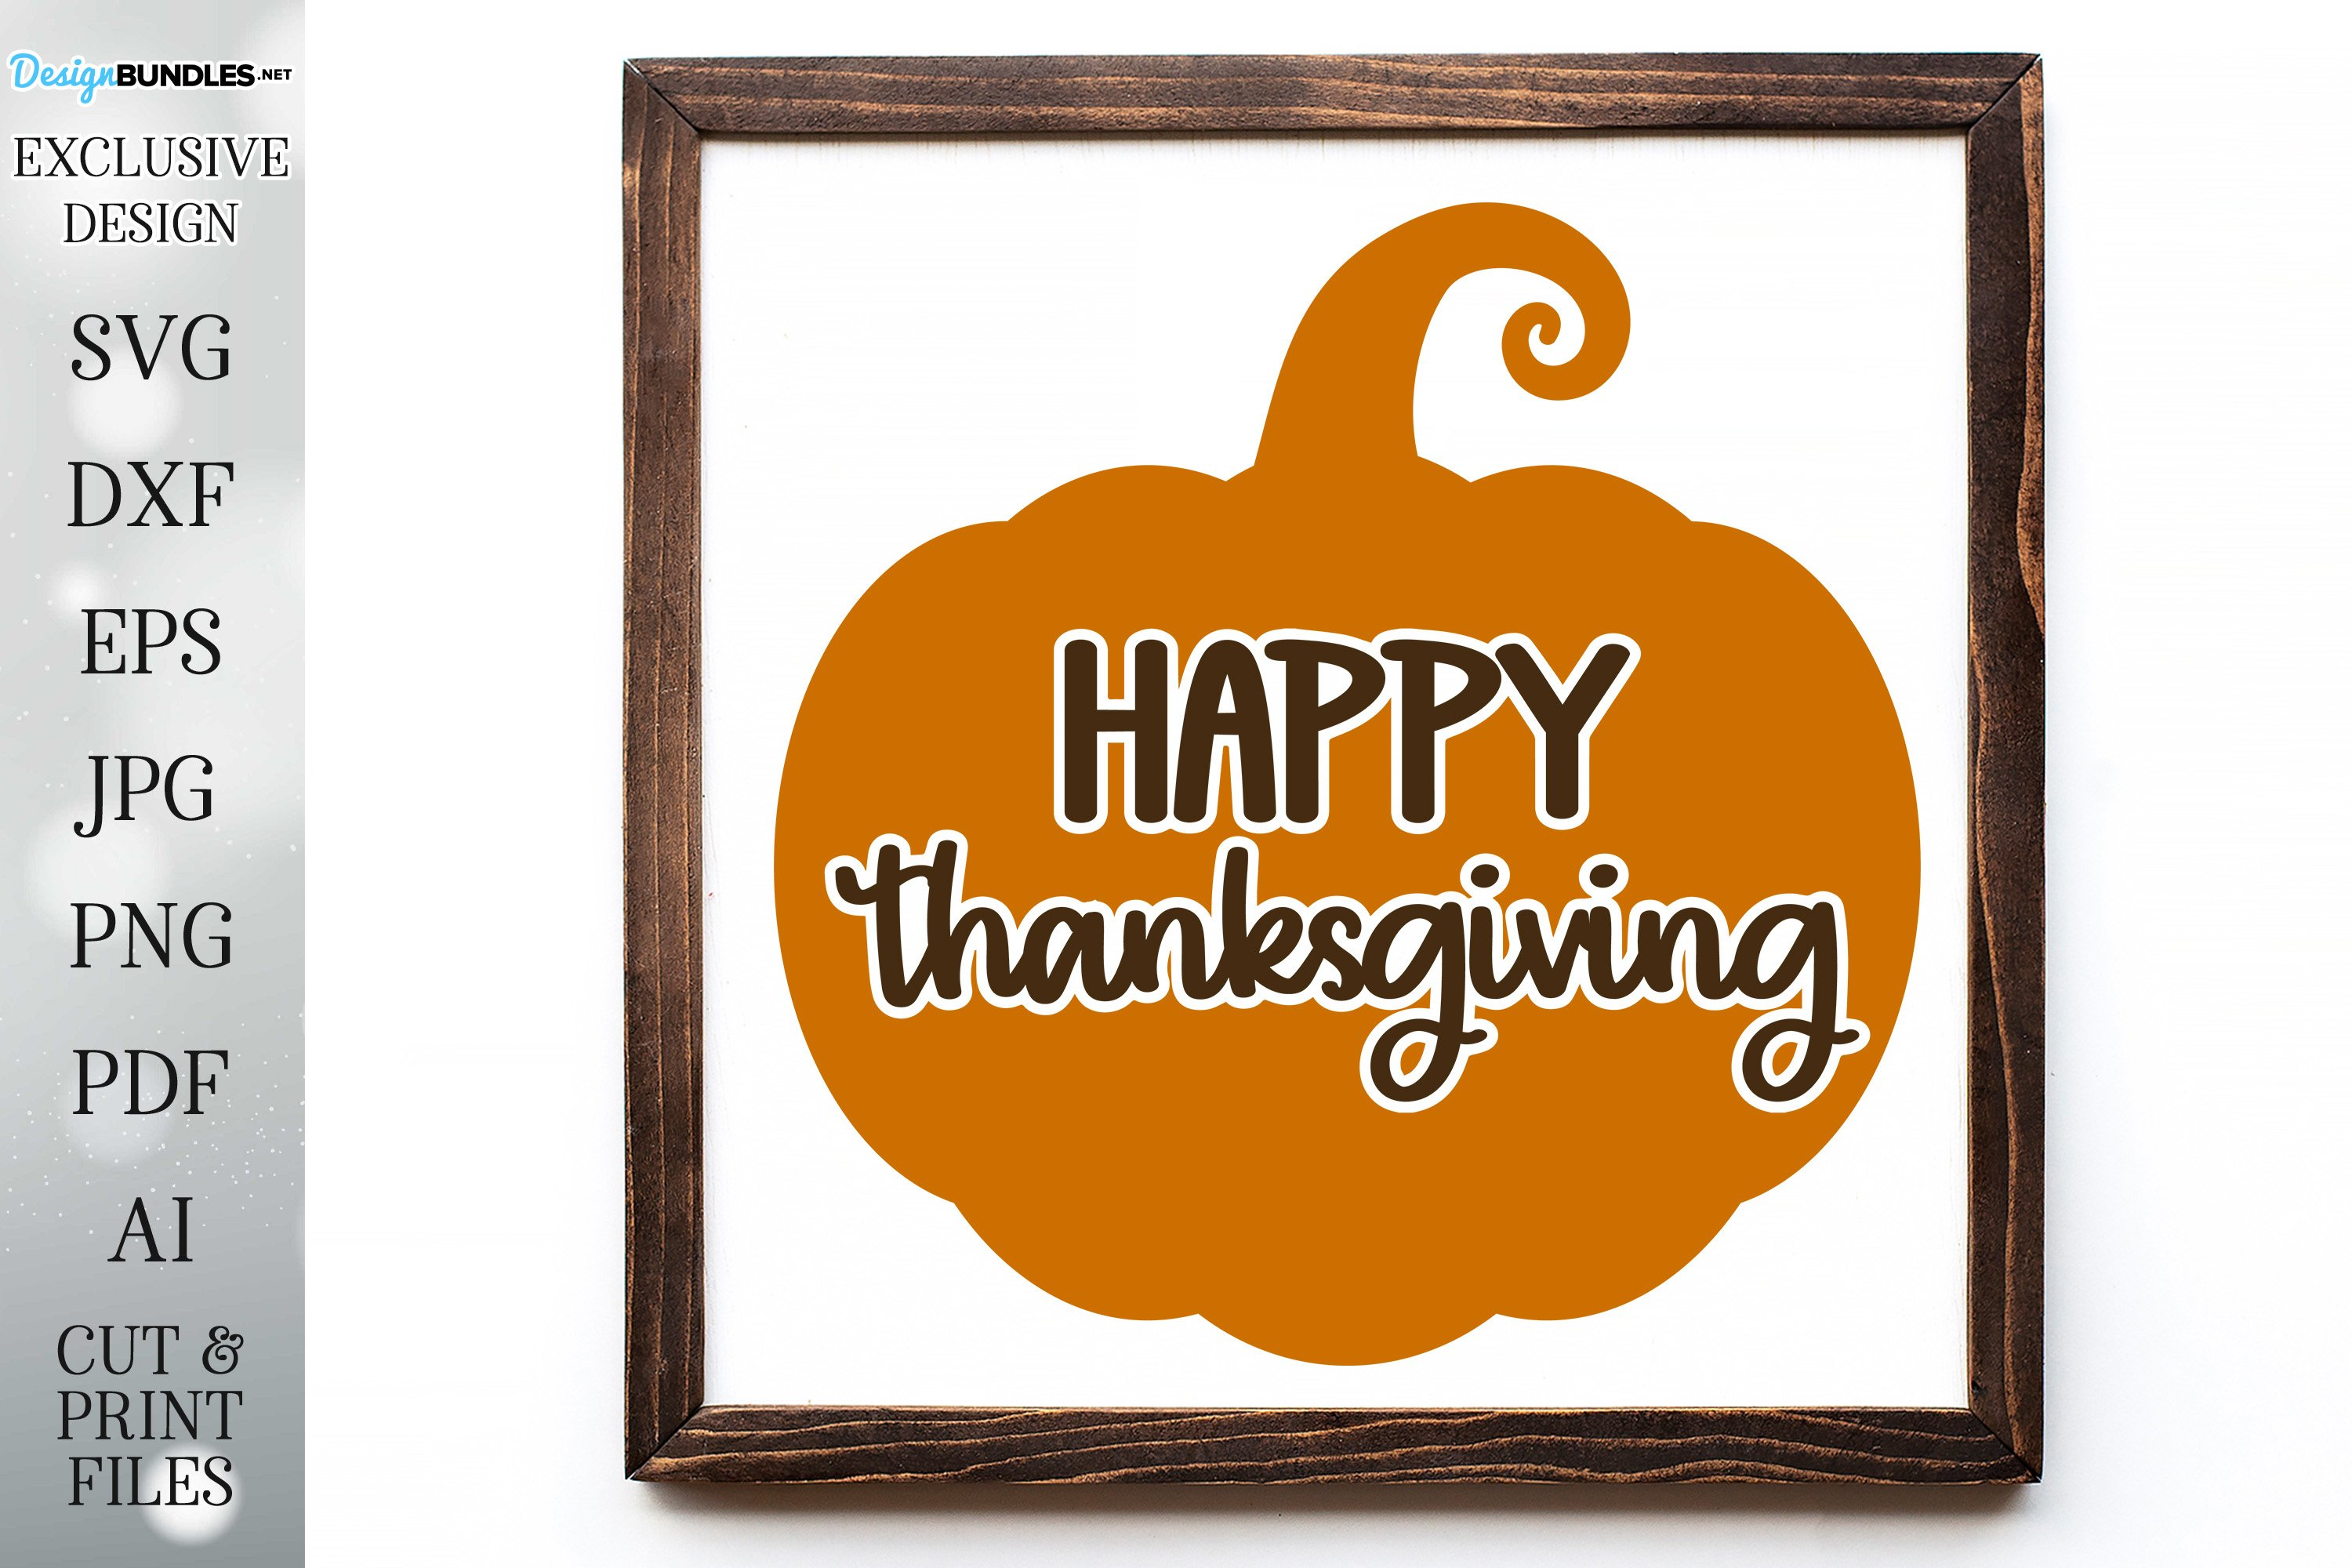 Happy Thanksgiving - Autumn / Fall Design example image 1